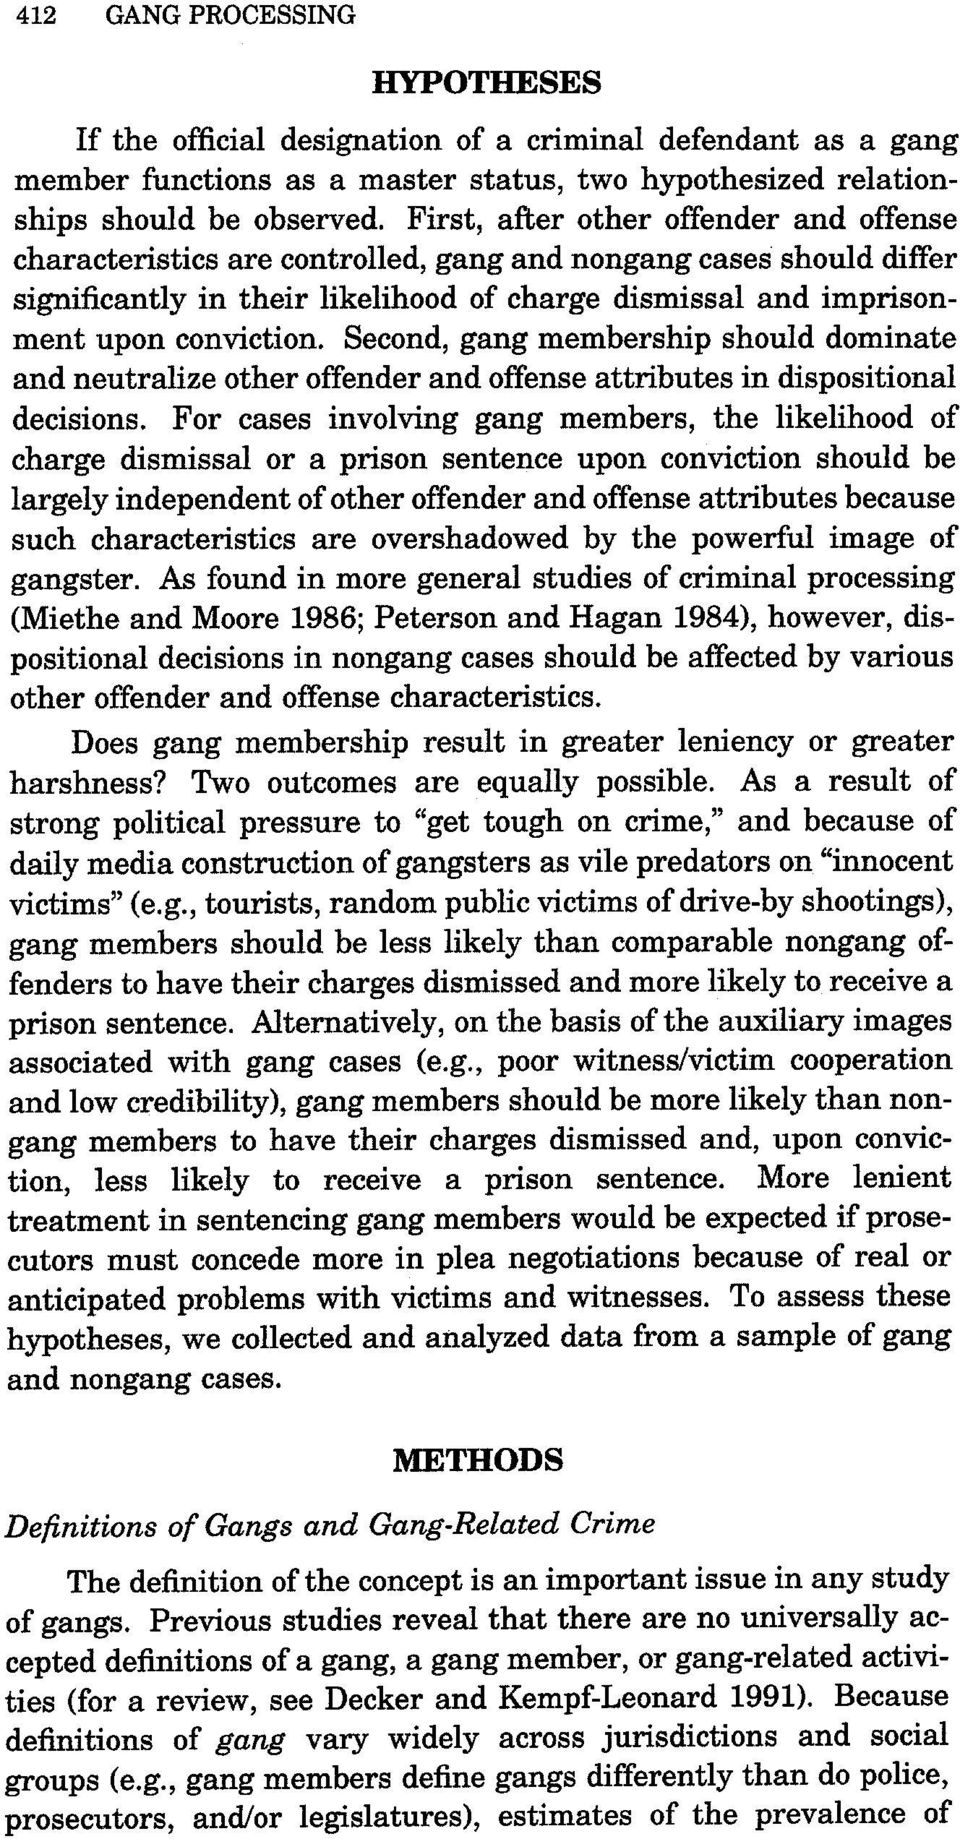 Second, gang membership should dominate and neutralize other offender and offense attributes in dispositional decisions.